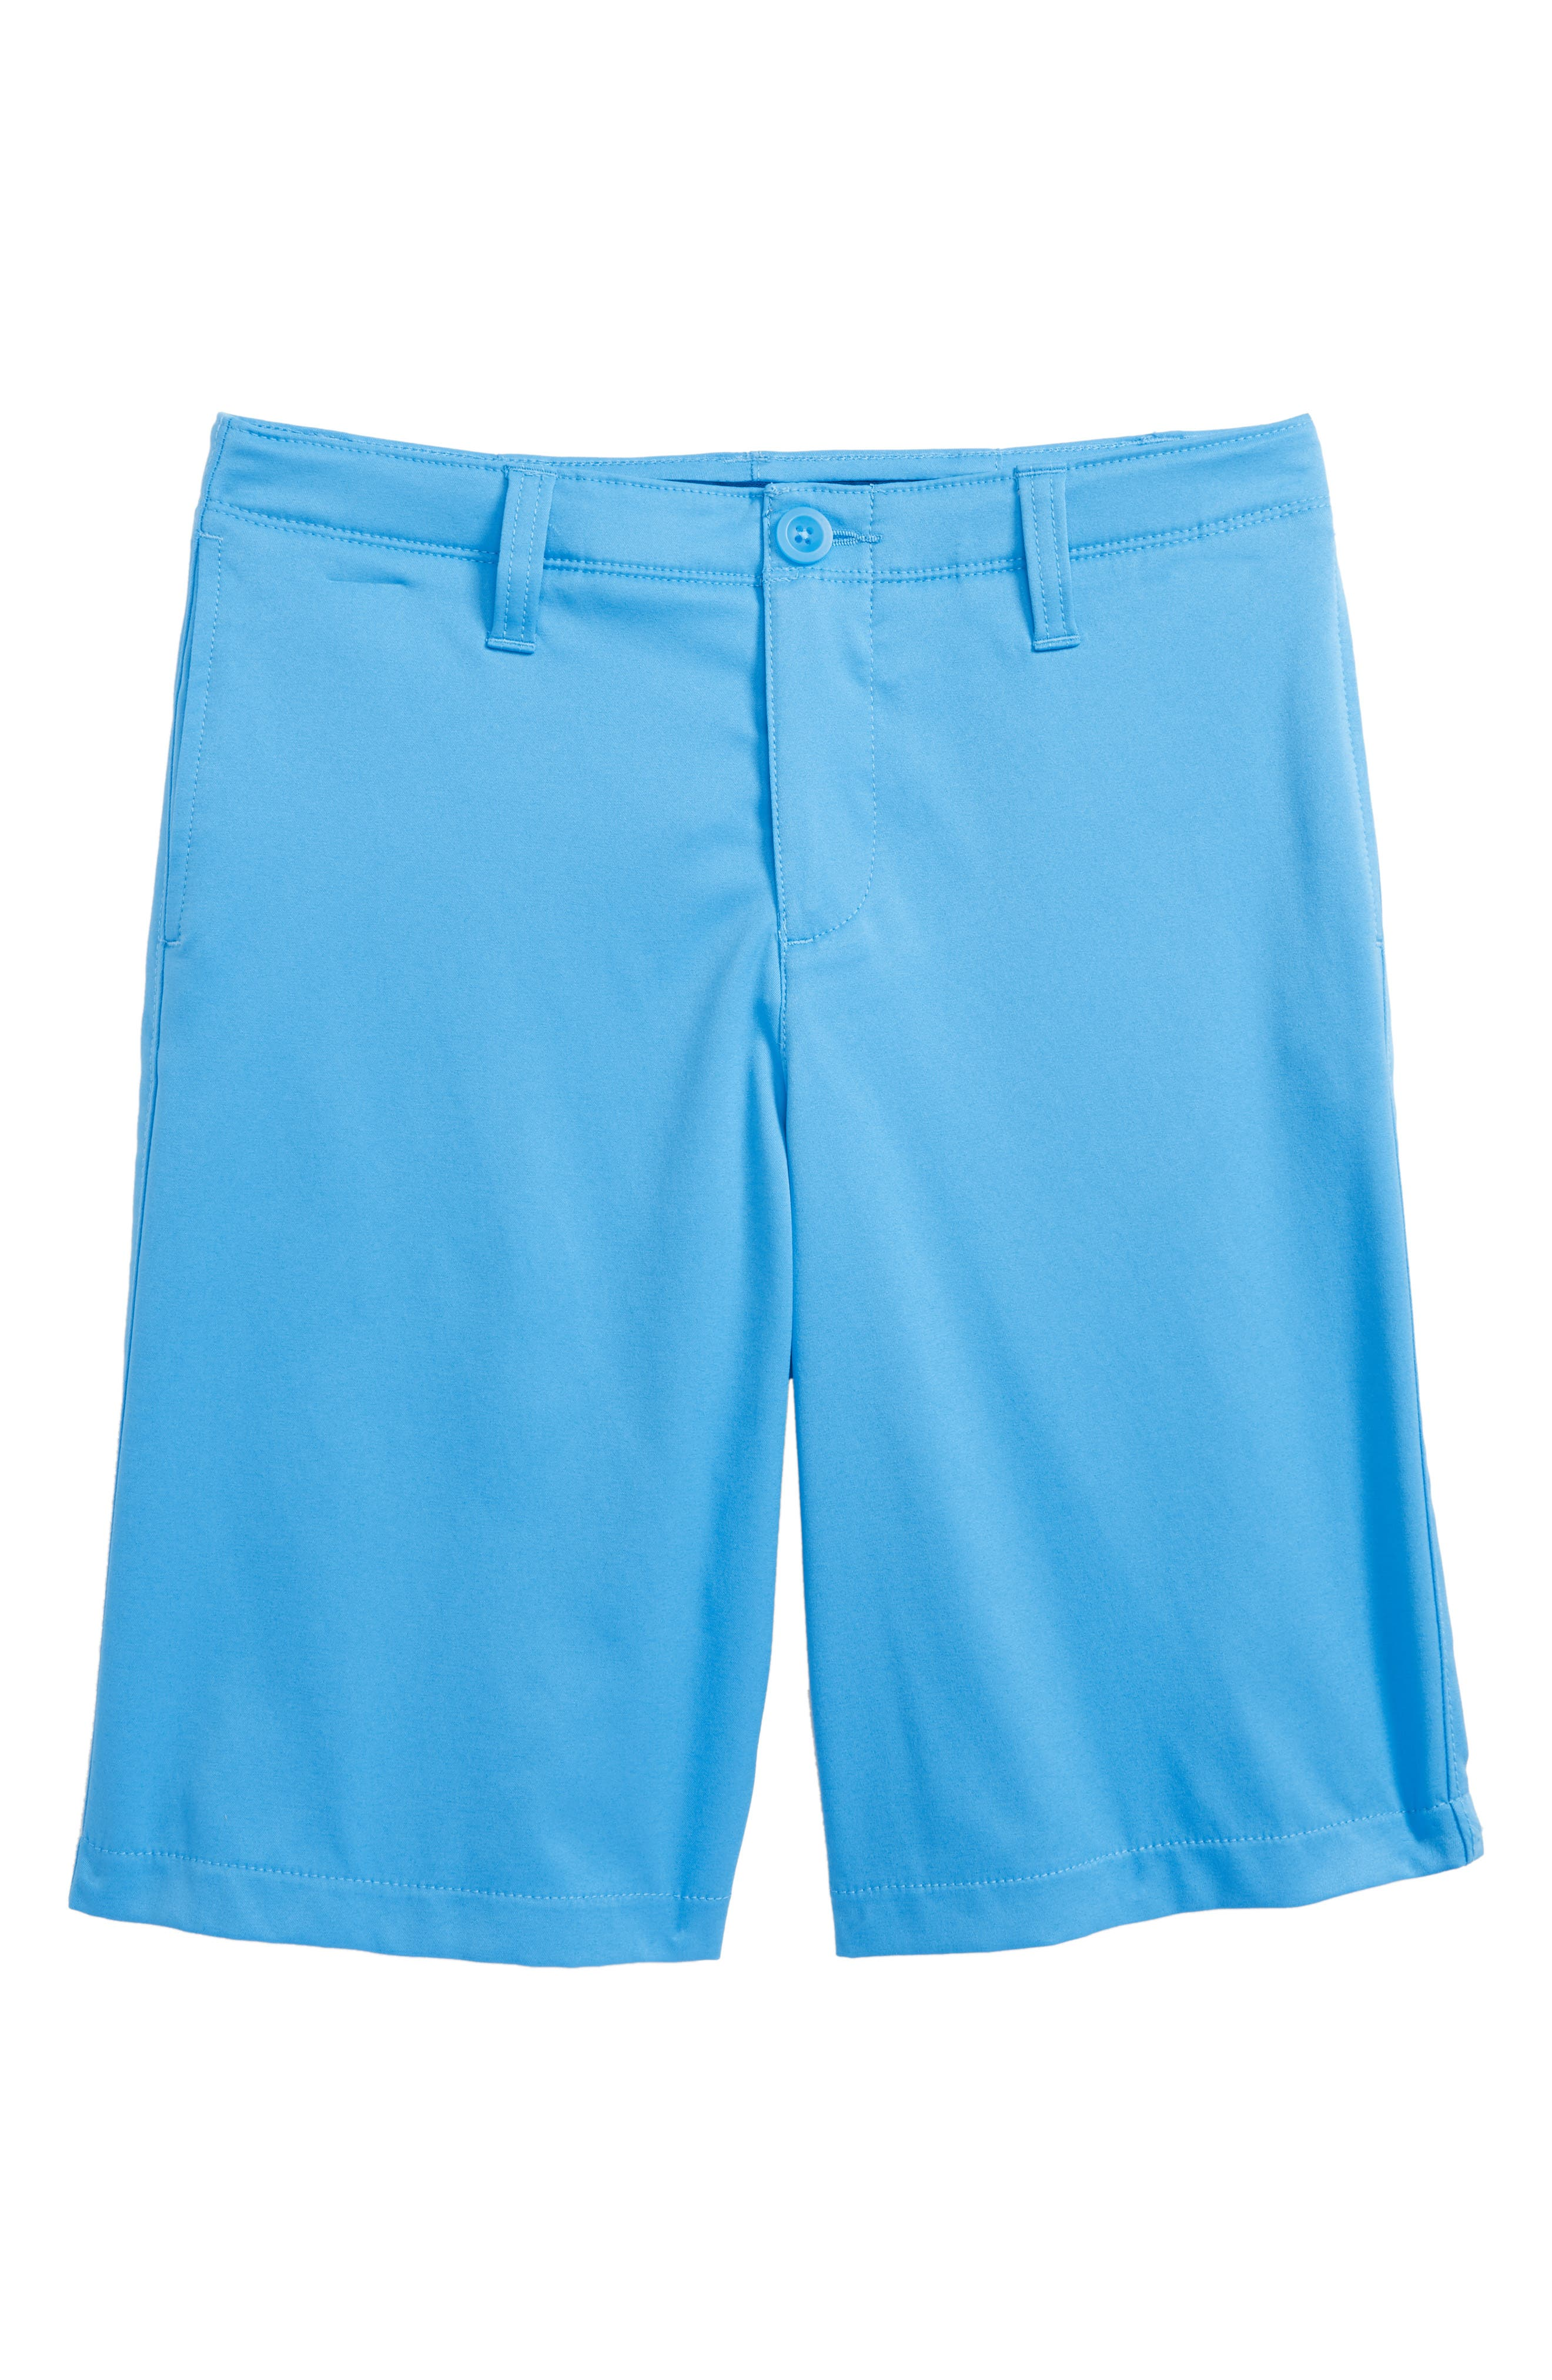 UNDER ARMOUR Match Play Shorts, Main, color, 401